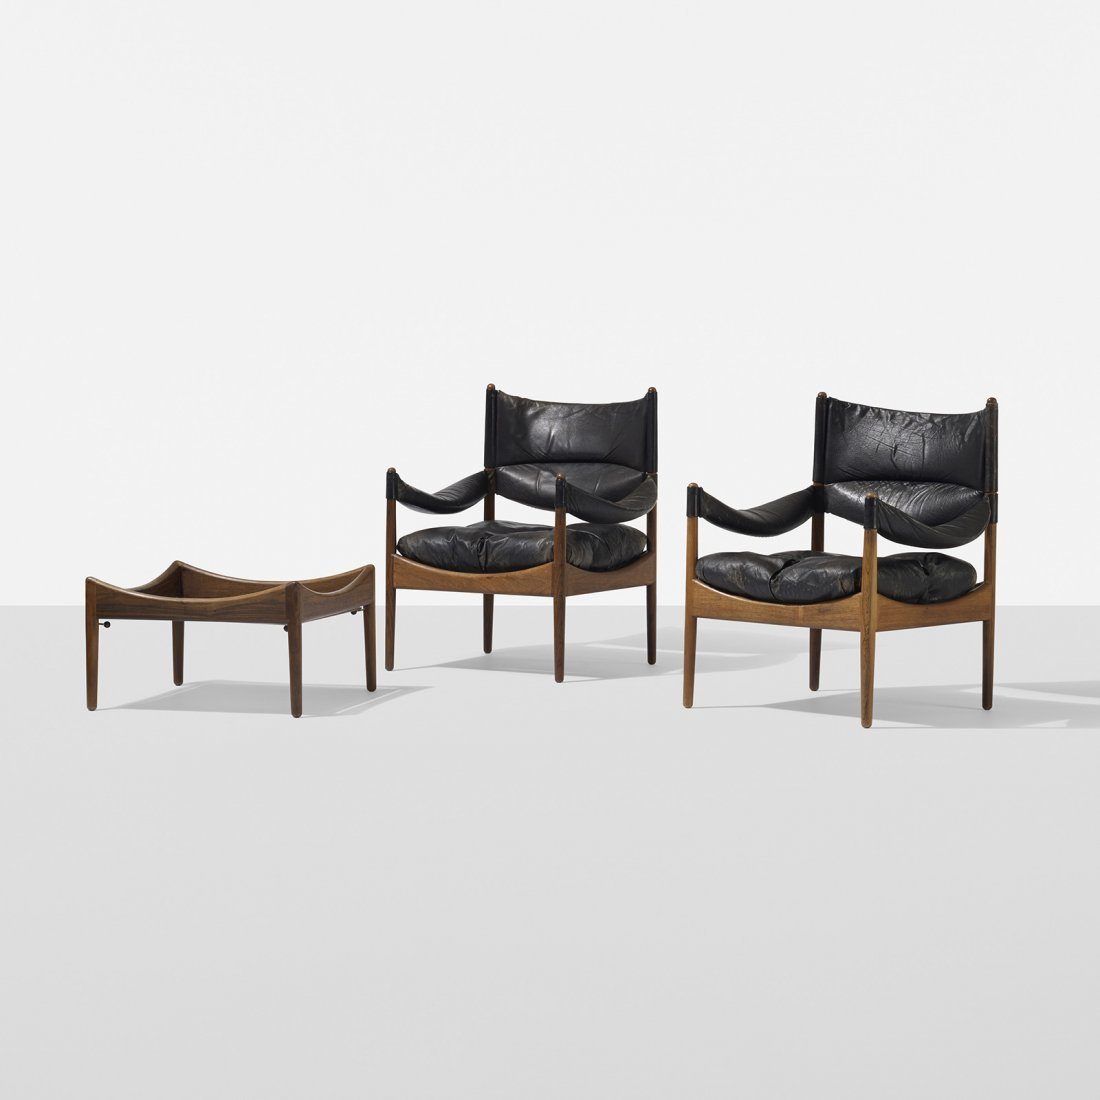 Kristian Vedel pair of Modus chairs and table